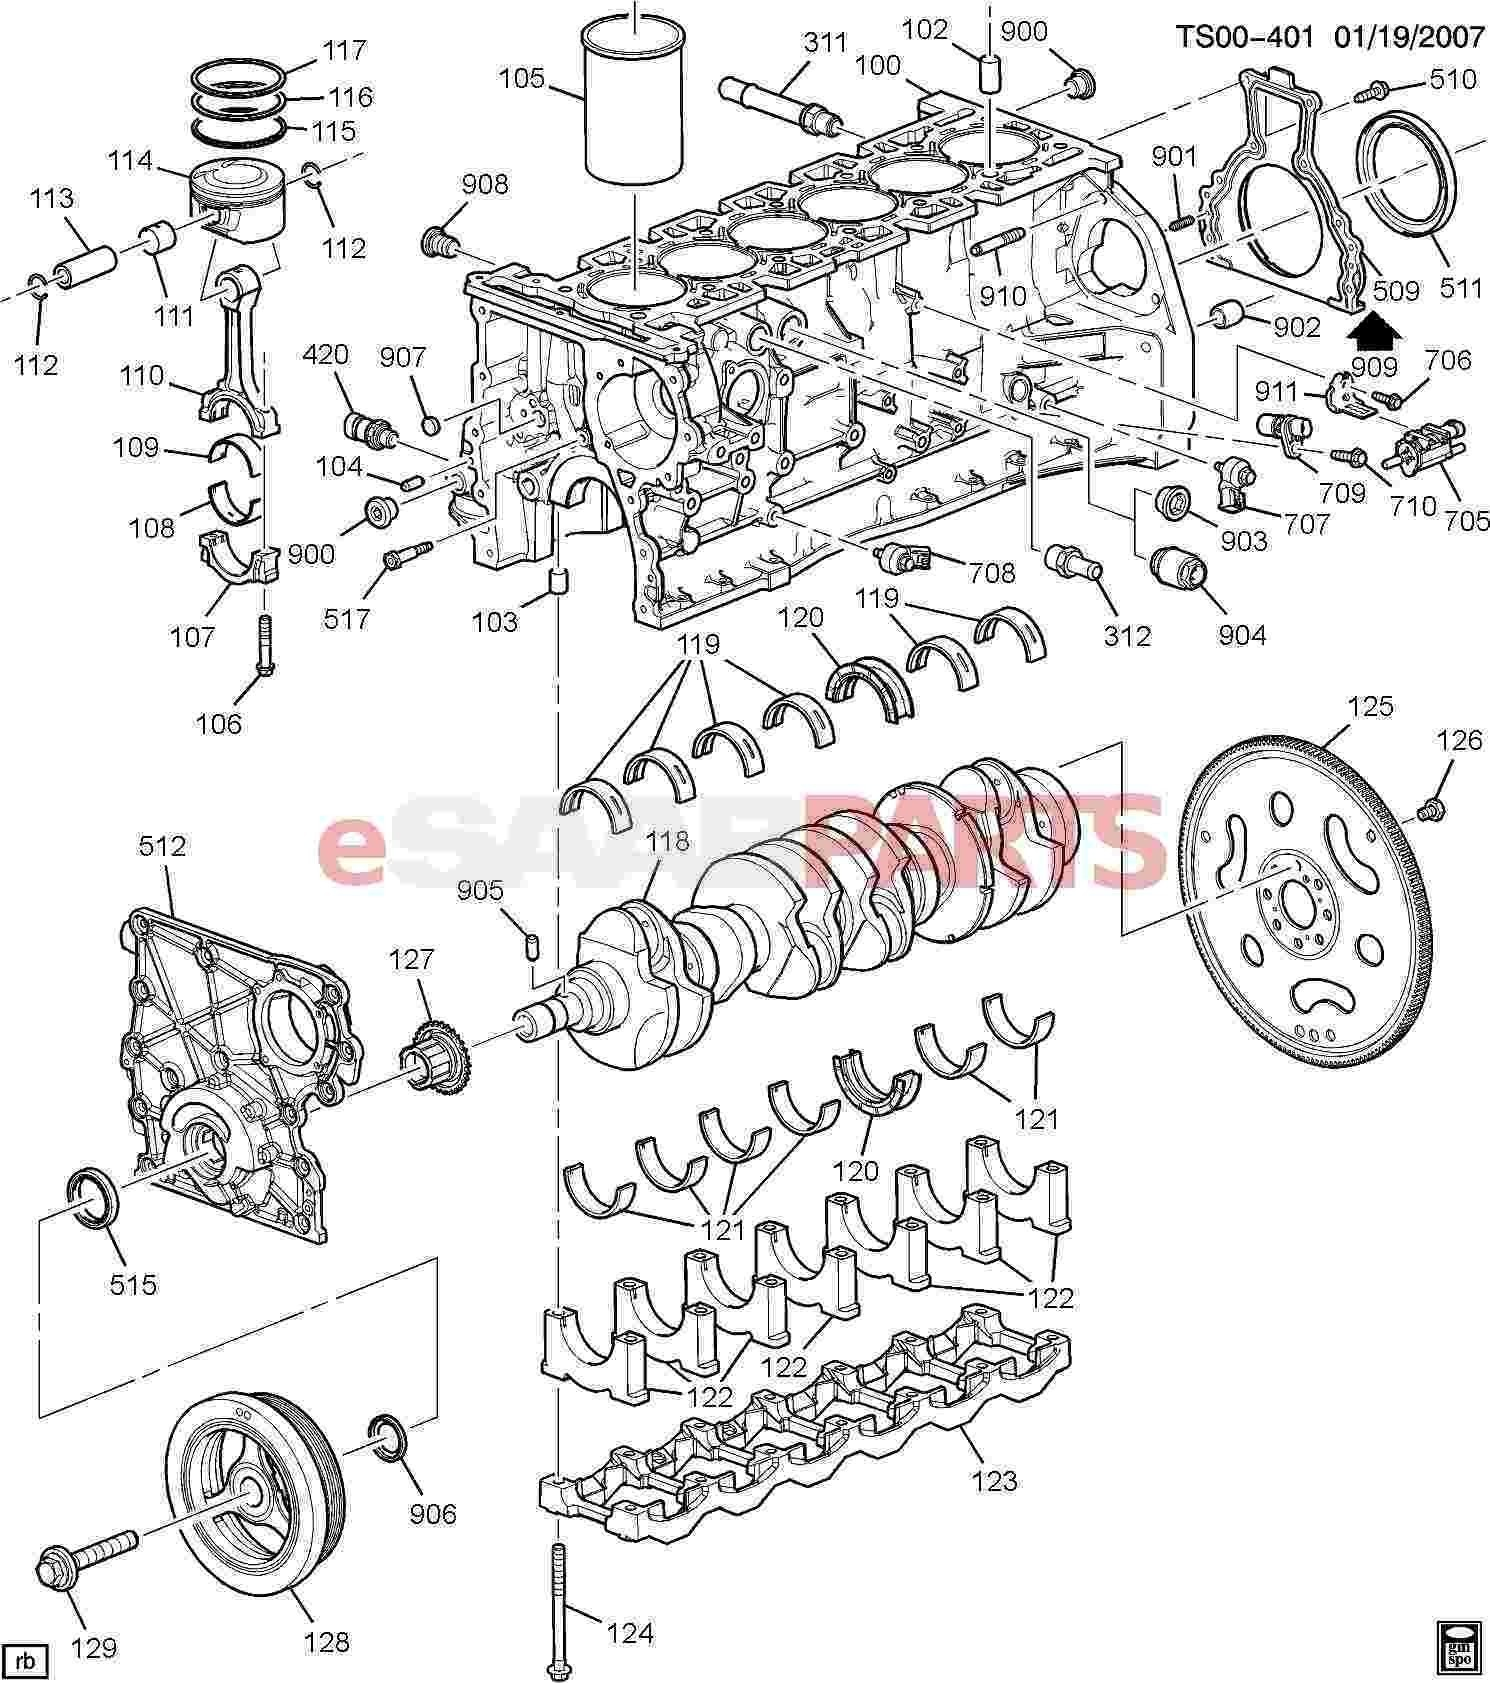 Under the Car Hood Diagram Car Parts Labeled Diagram Of Under the Car Hood Diagram